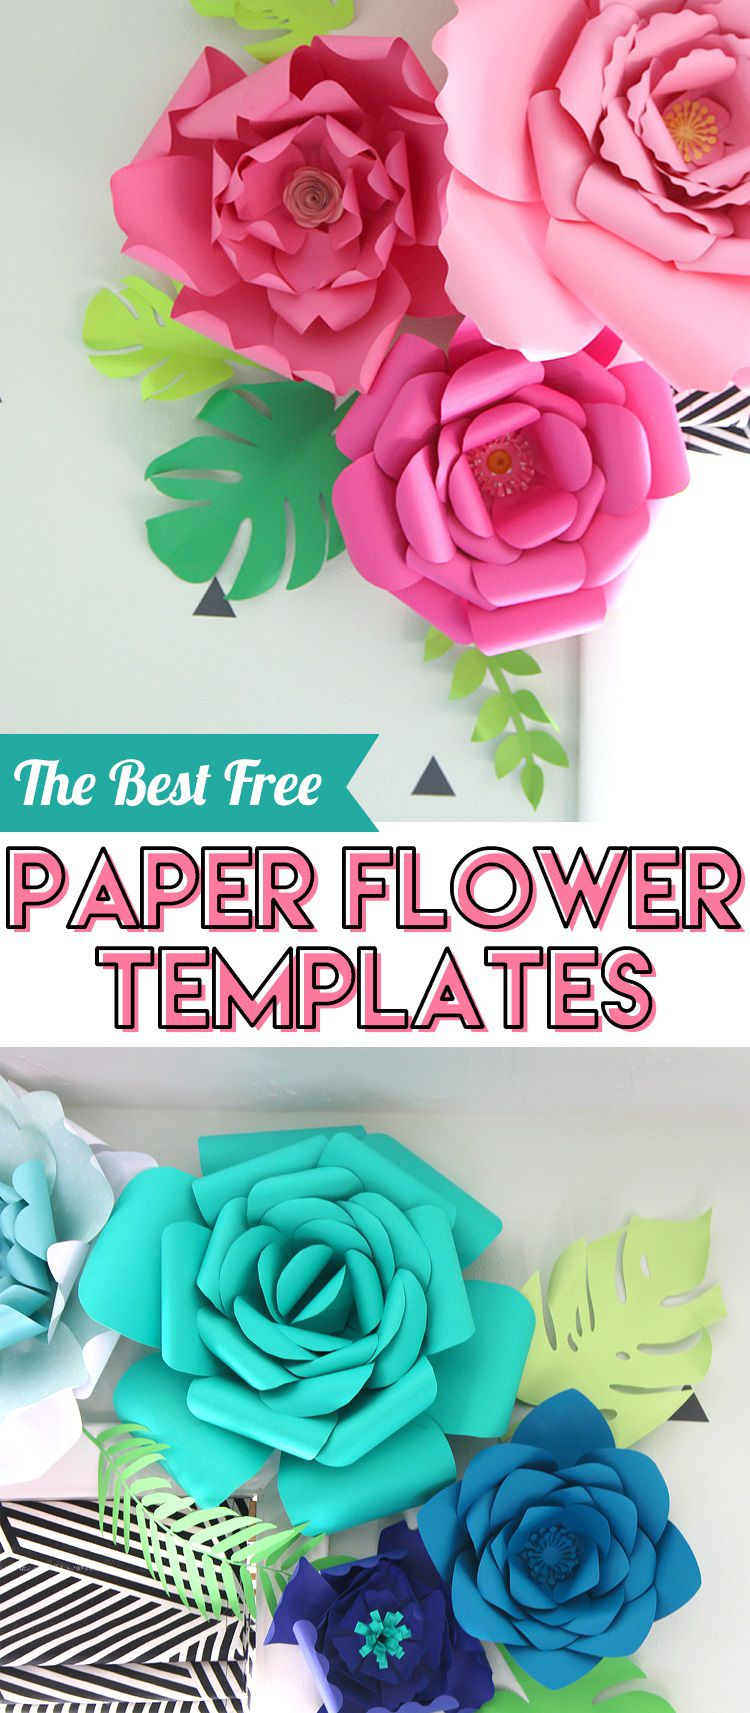 008 Best Large Rose Paper Flower Template Free Picture Full